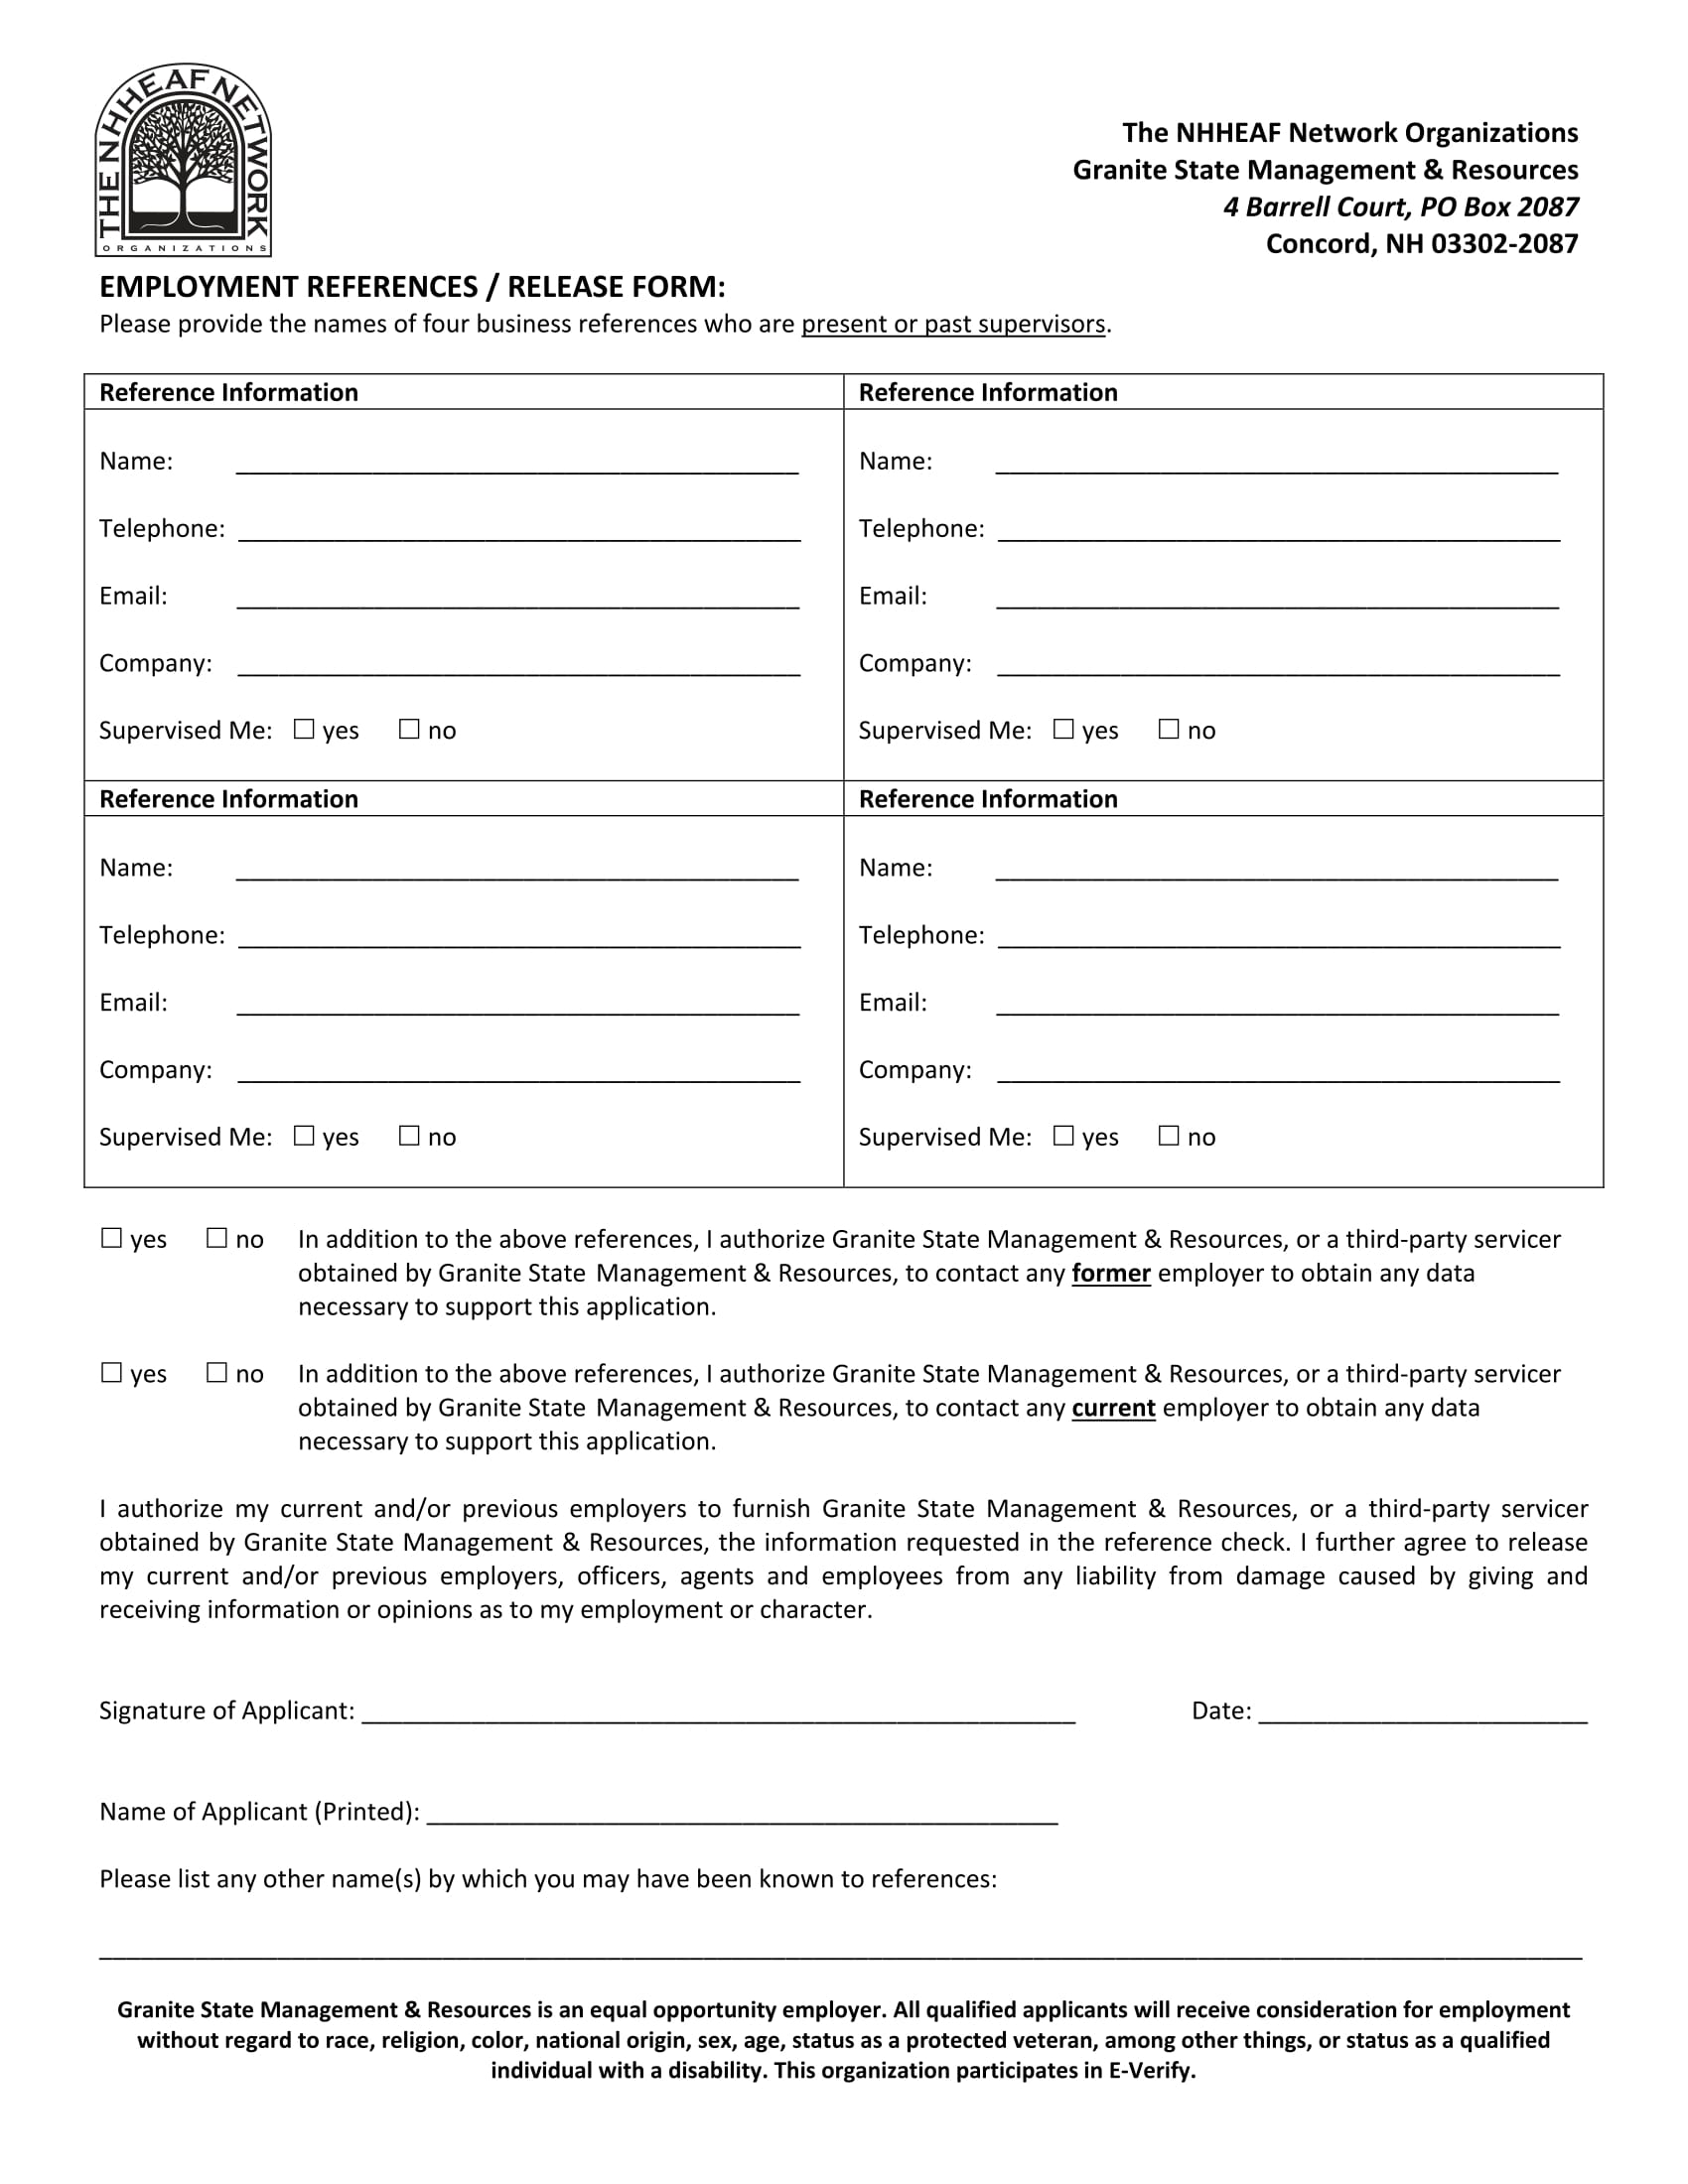 job reference form template free business proposal letter funeral